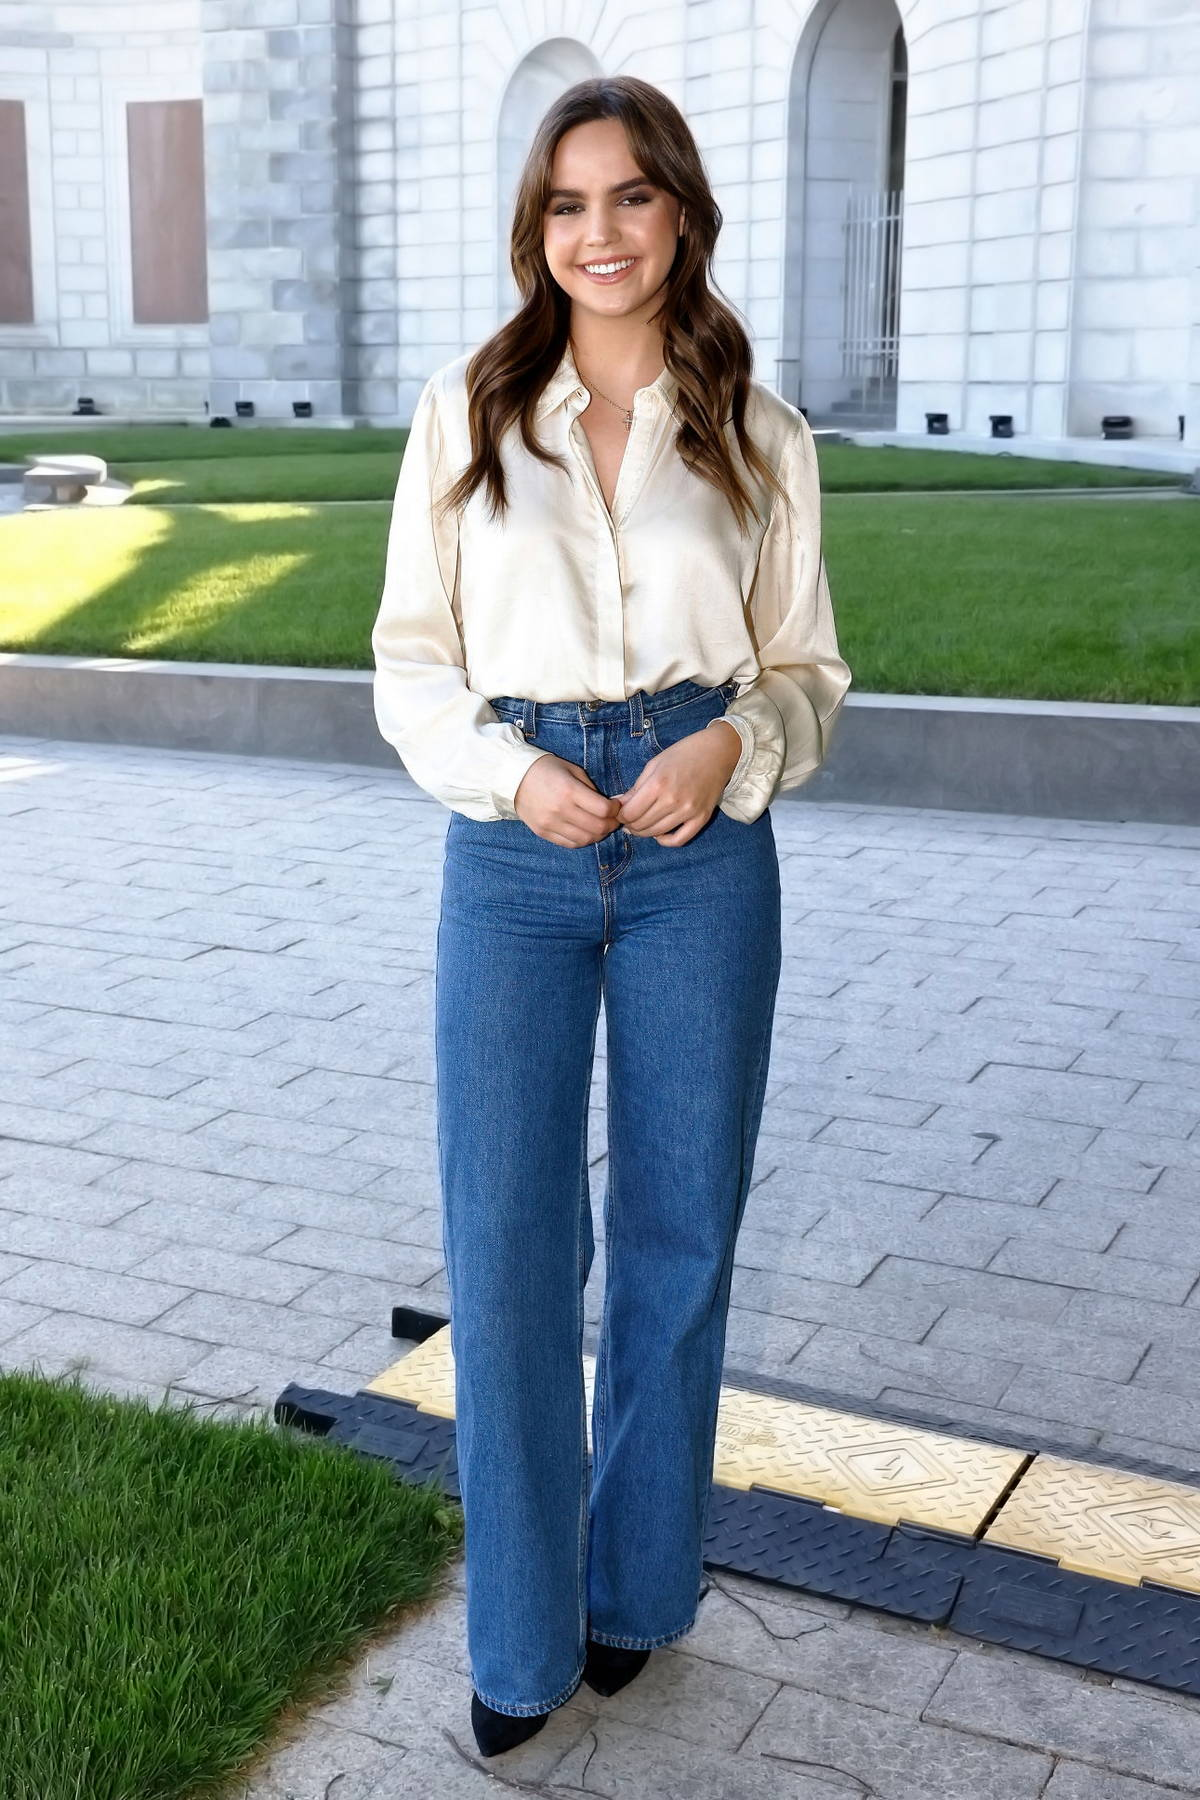 Bailee Madison makes an appearance at the Capital Concerts' 'National Memorial Day Concert' in Washington, D.C.